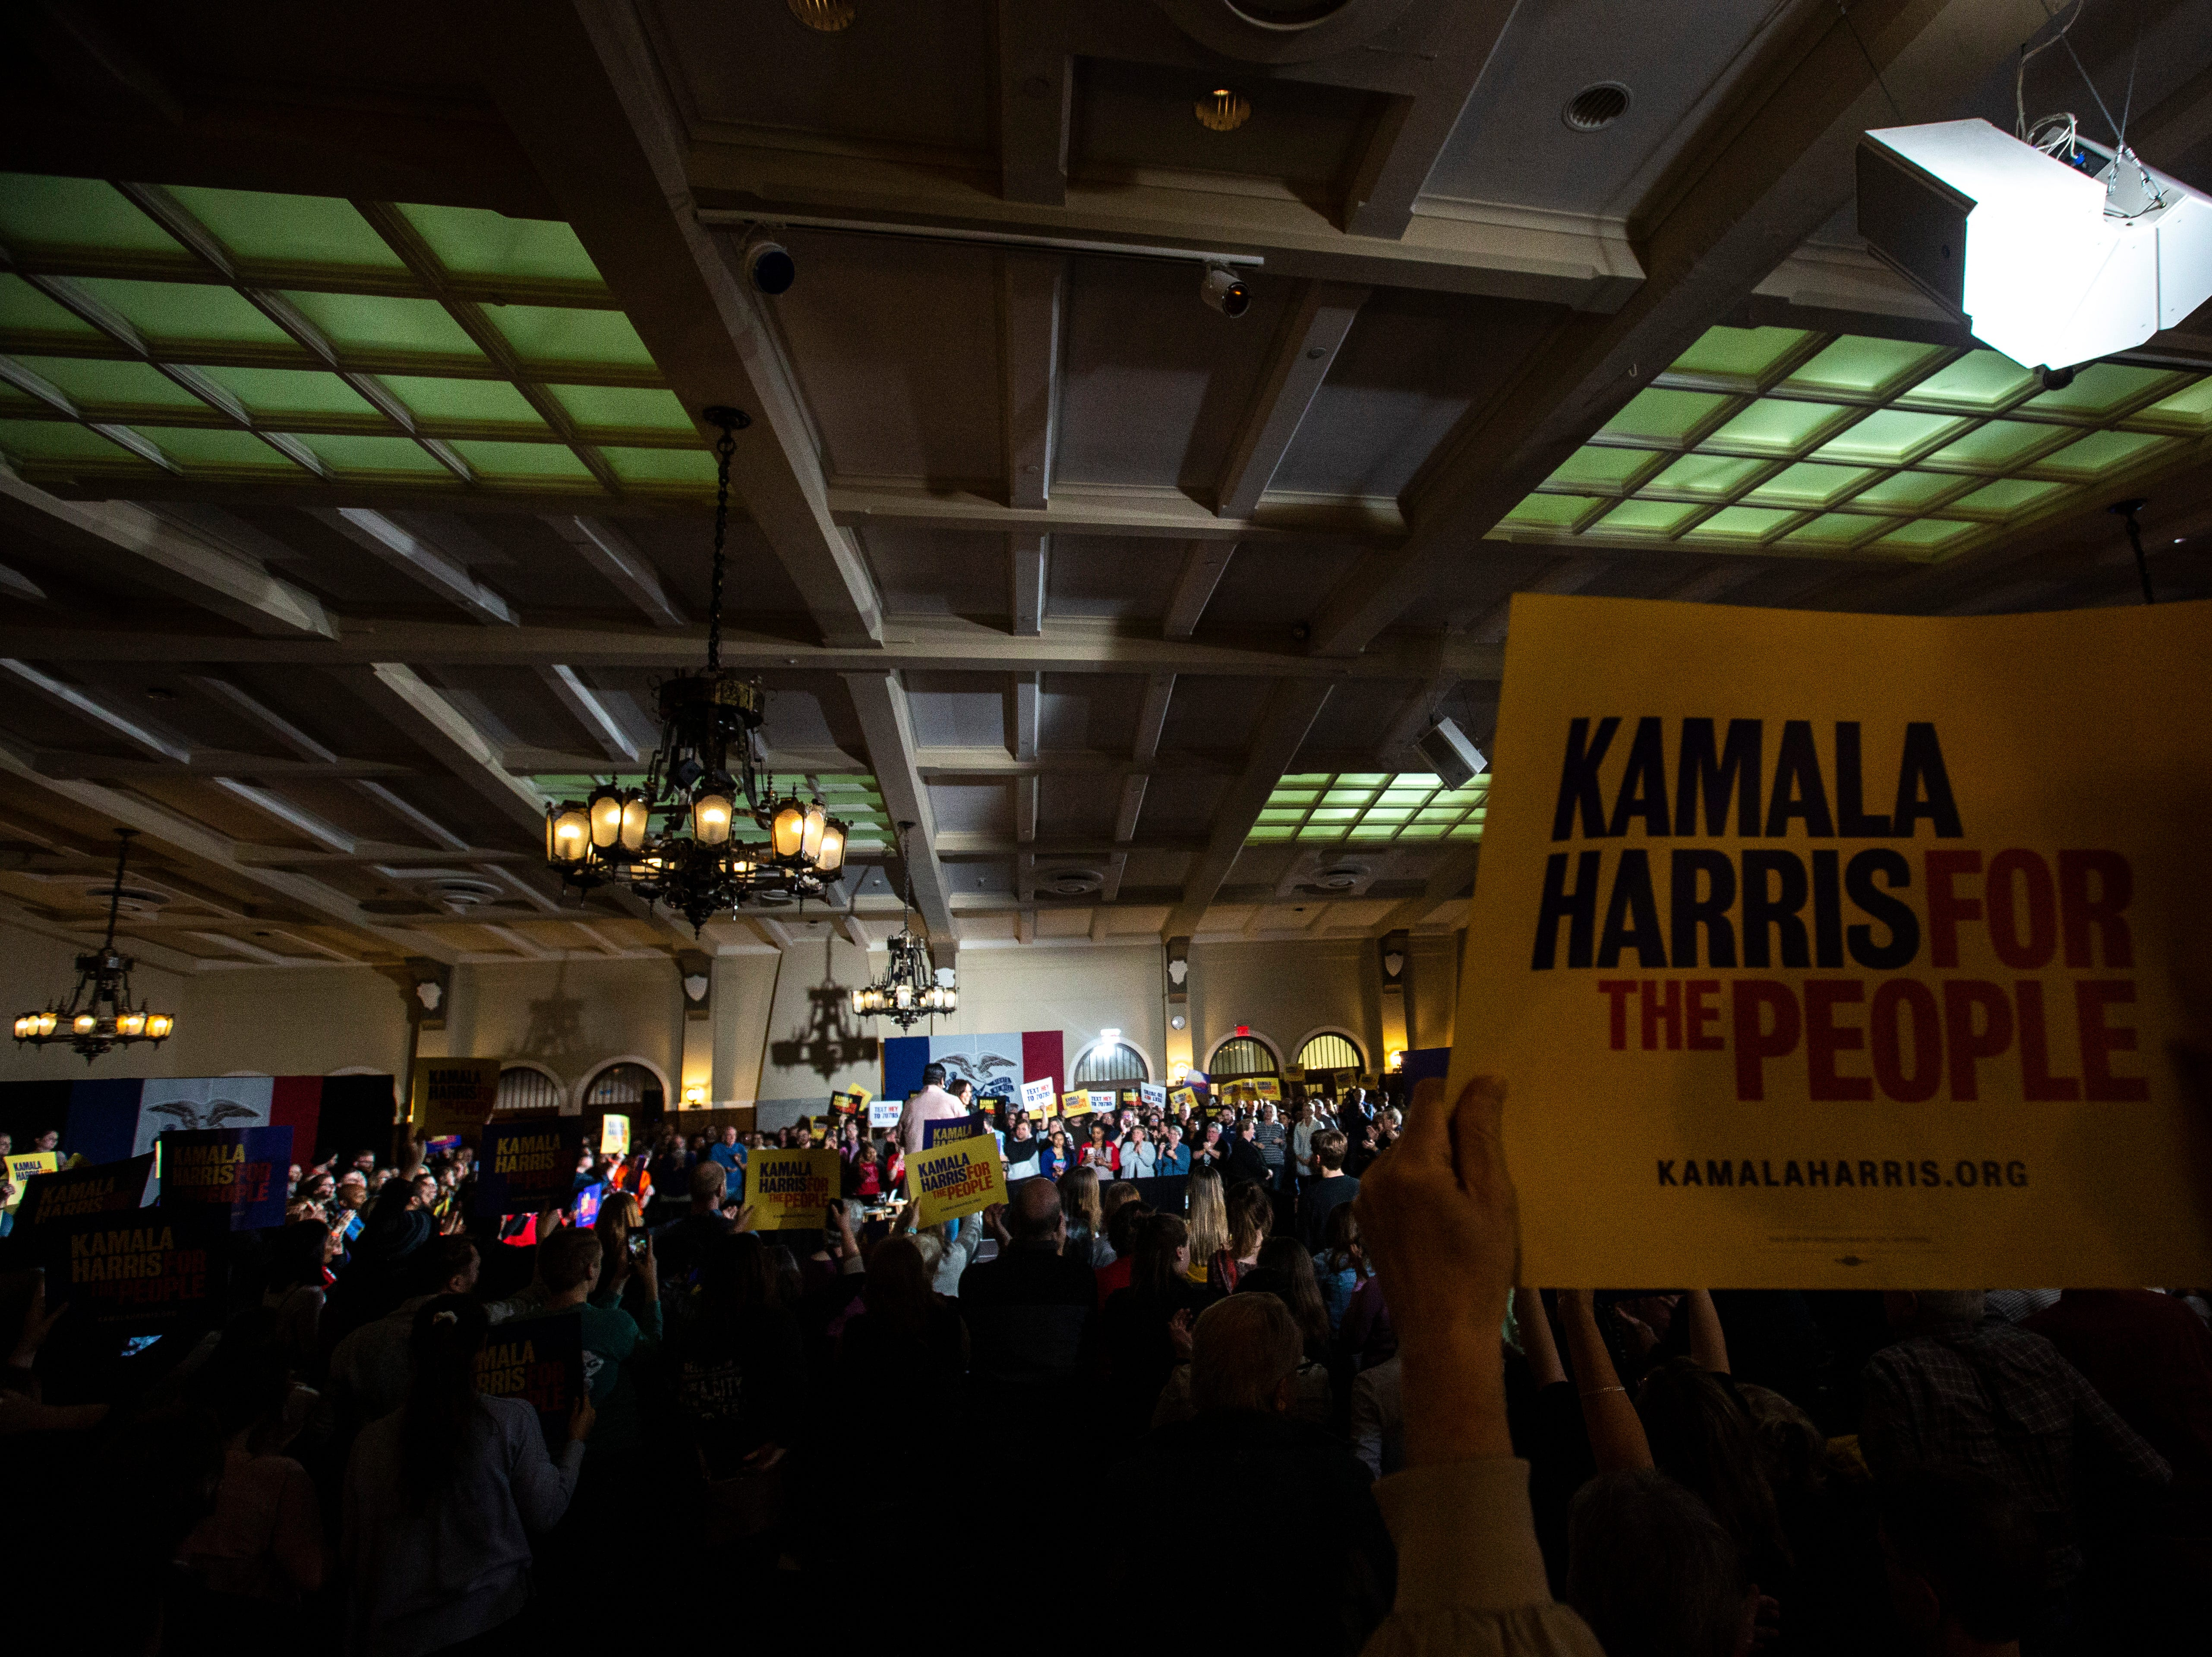 The crowd cheers as U.S. Sen. Kamala Harris, D-Calif., speaks during a town hall event on Wednesday, April 10, 2019, at the Iowa Memorial Union main lounge in Iowa City, Iowa.